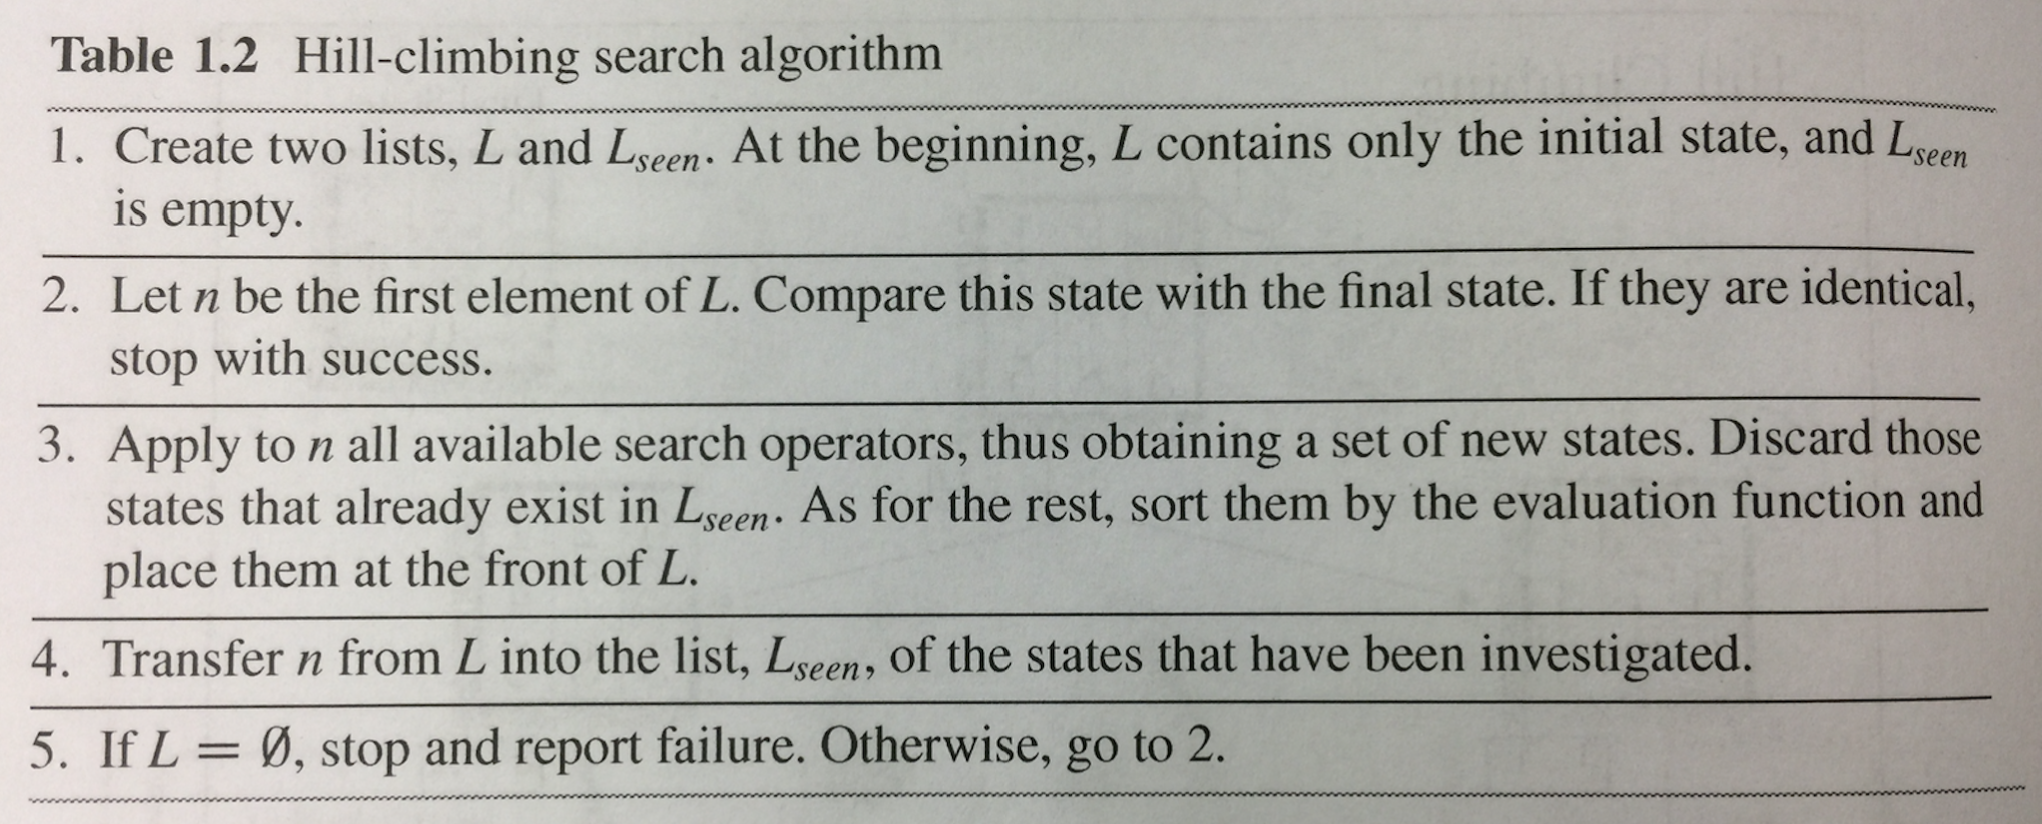 Solve the Slide Puzzle with Hill Climbing Search Algorithm